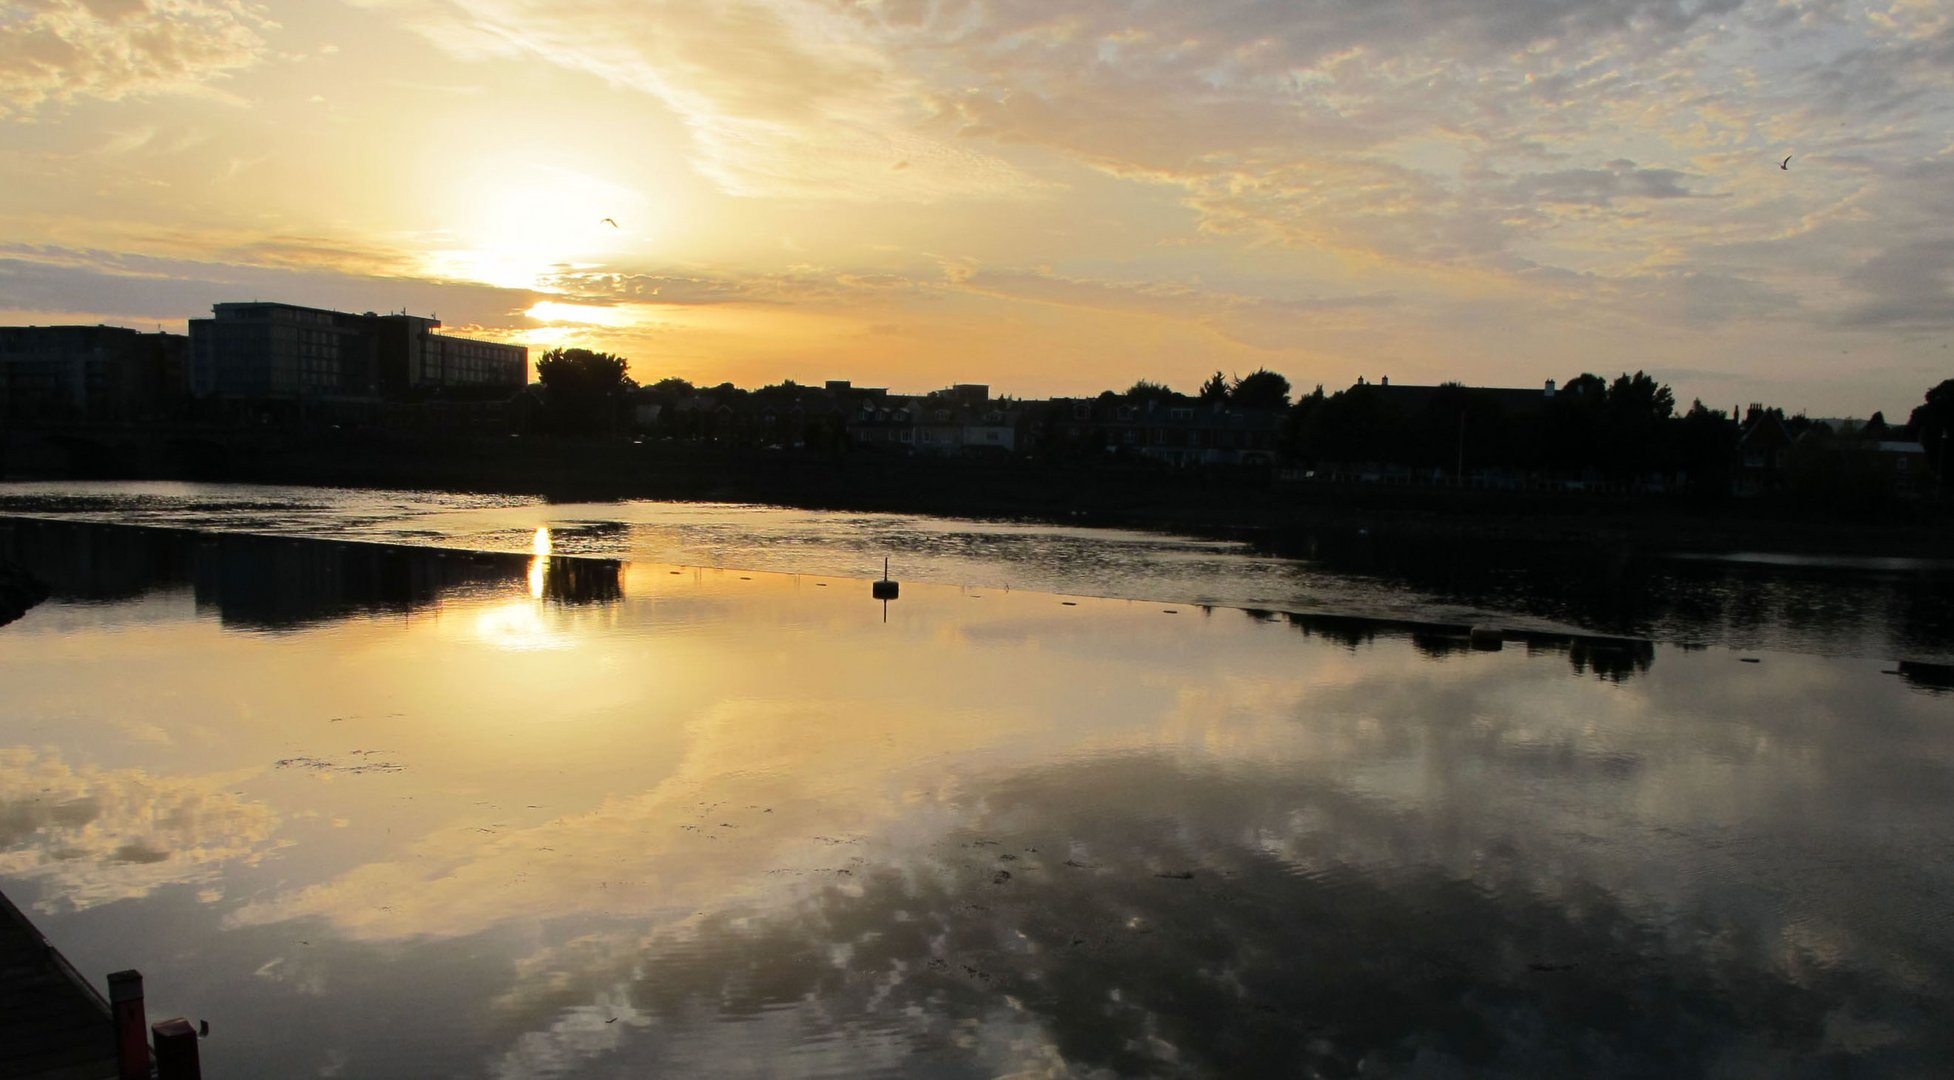 Shannon River in Limerick